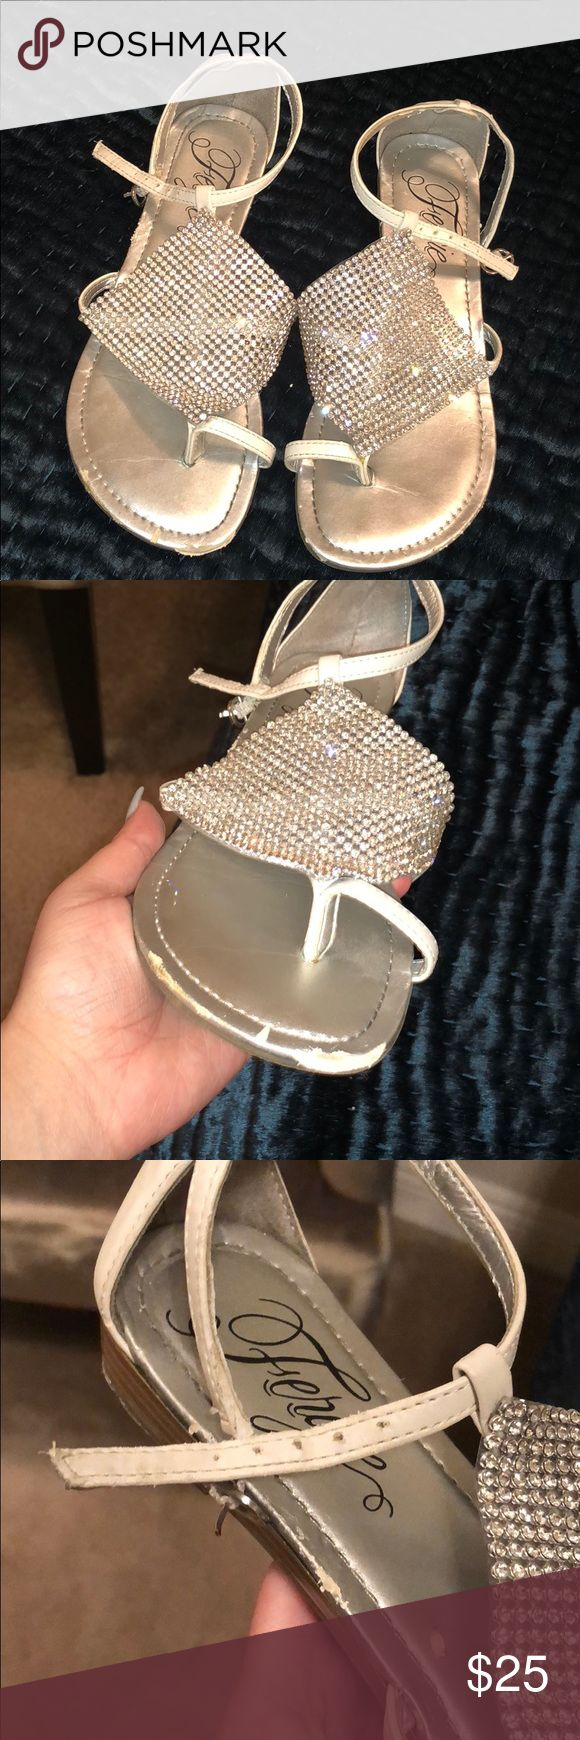 'Fergie' Sparkly sandals size 5 Worn maybe twice. Has some wears and tears from having the sandals for years. Very sparkly and cute on the feet. Fergie Shoes Sandals